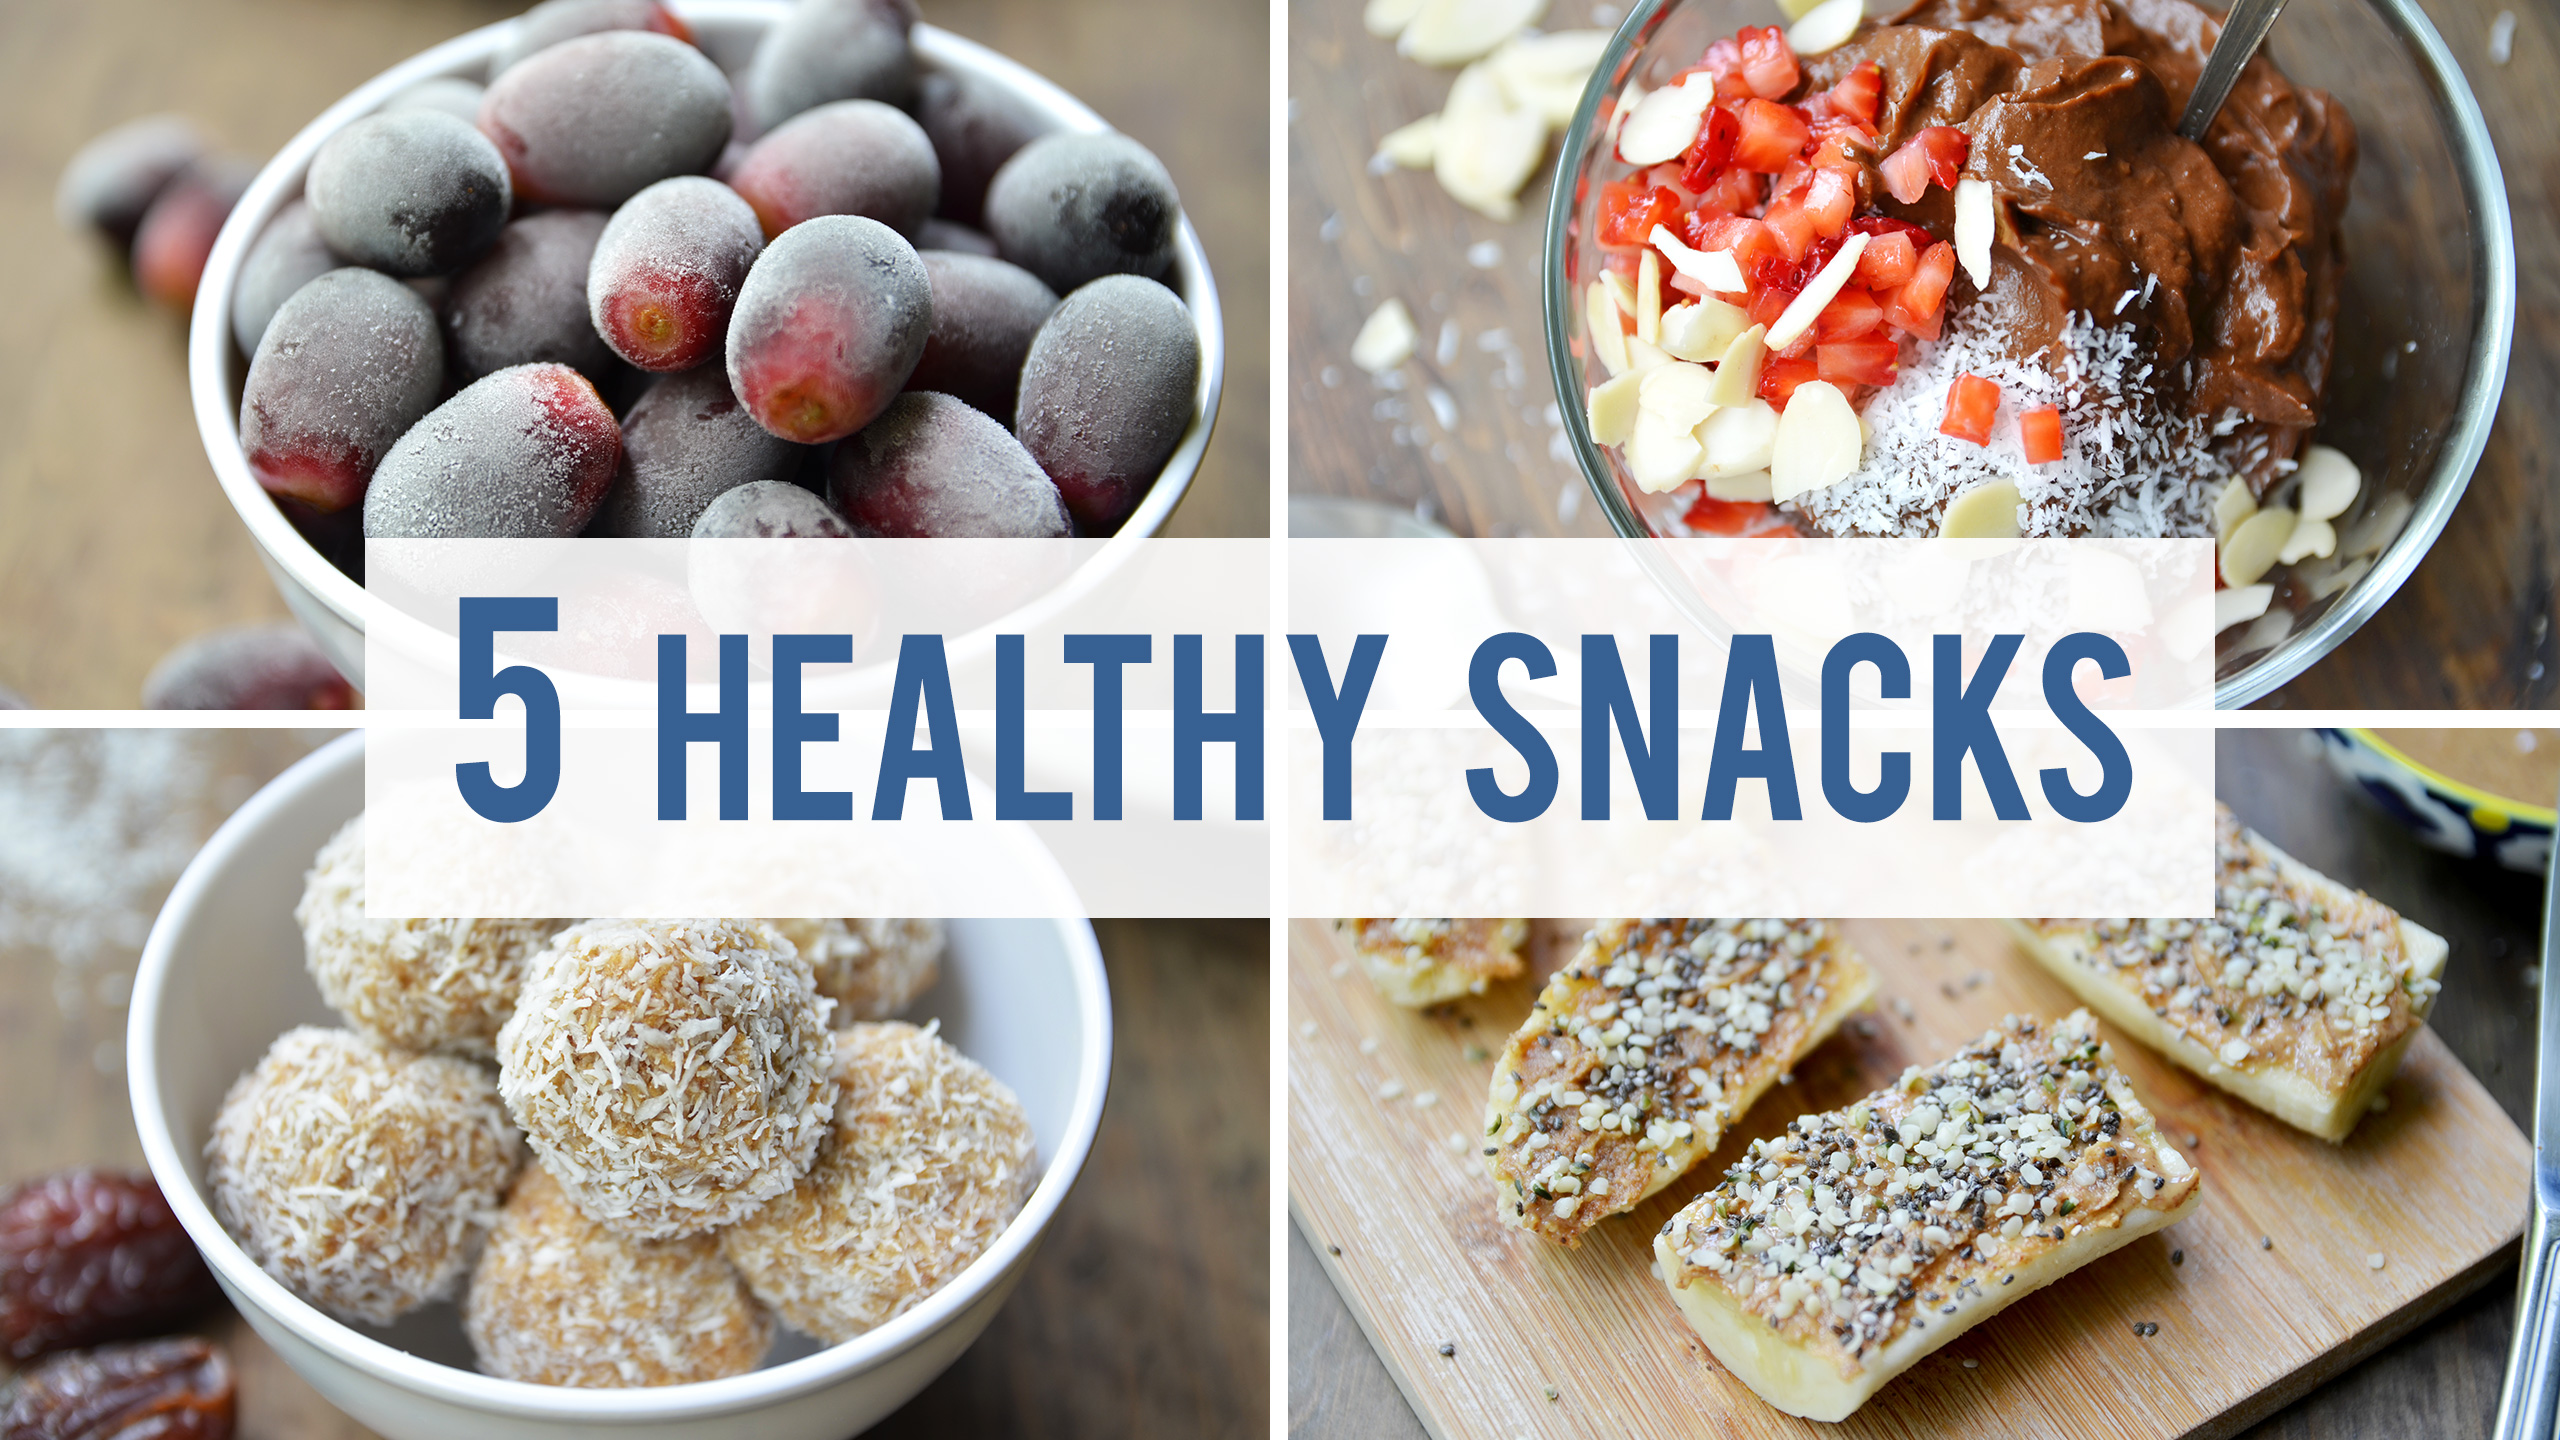 5 healthy snacks for your sweet tooth fablunch 5 healthy snacks for your sweet tooth forumfinder Images